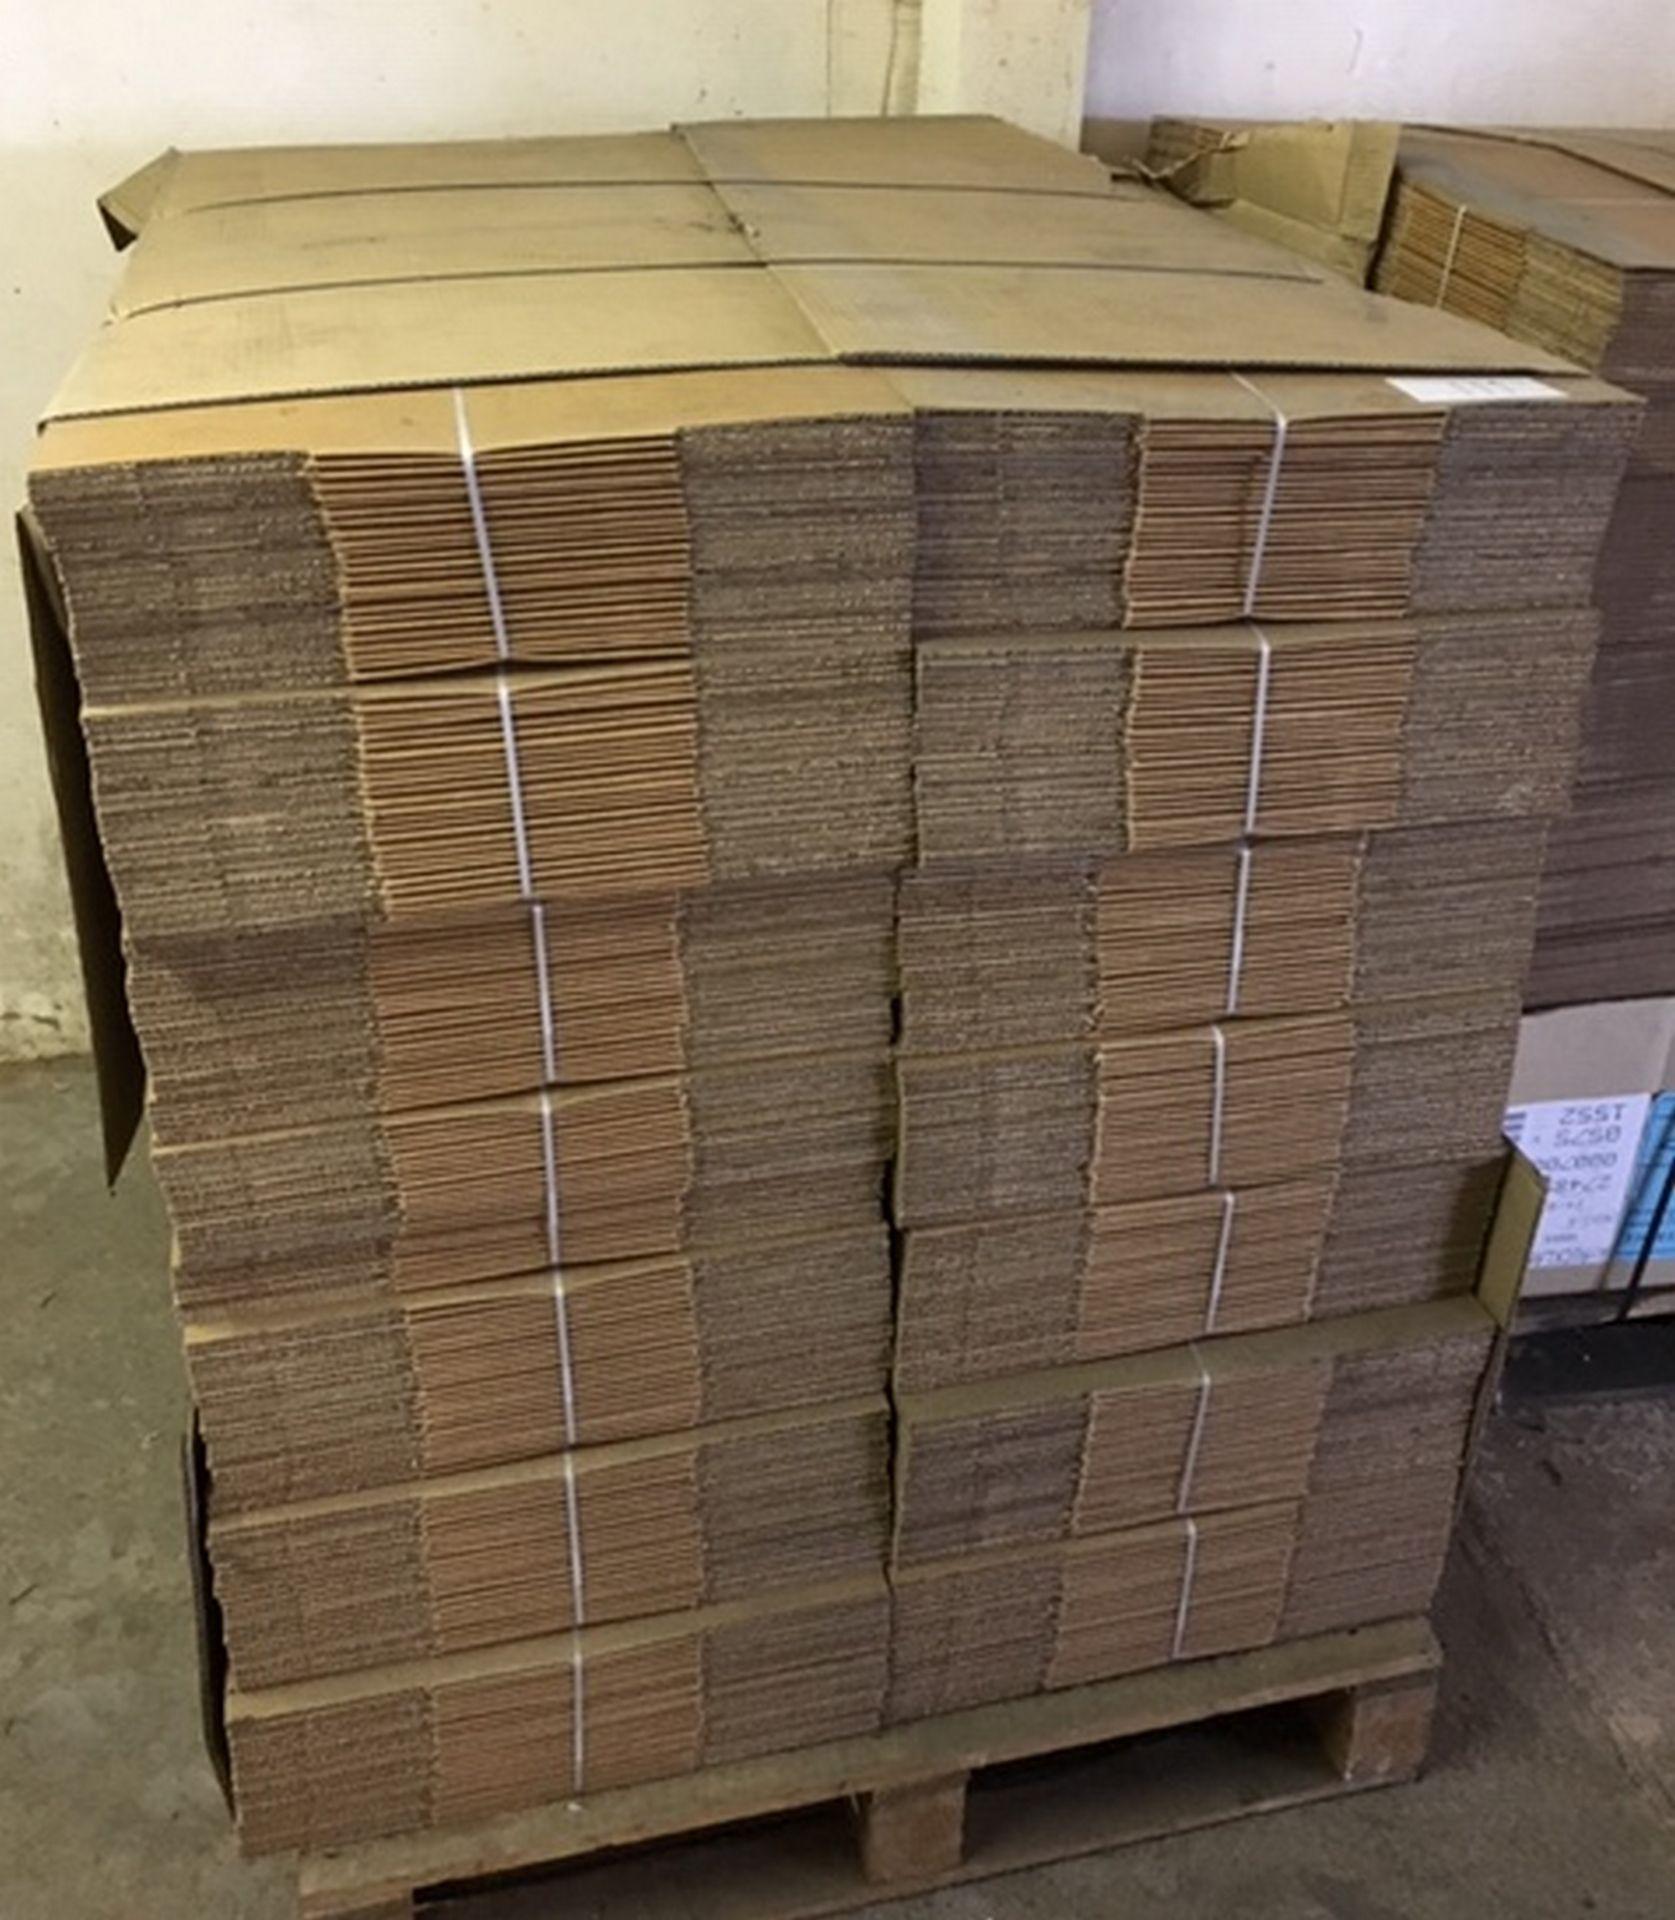 """Lot 111 - Pallet of Cardboard Boxes 700 in total each approx 11"""" x 11"""" x 7 1/2""""."""